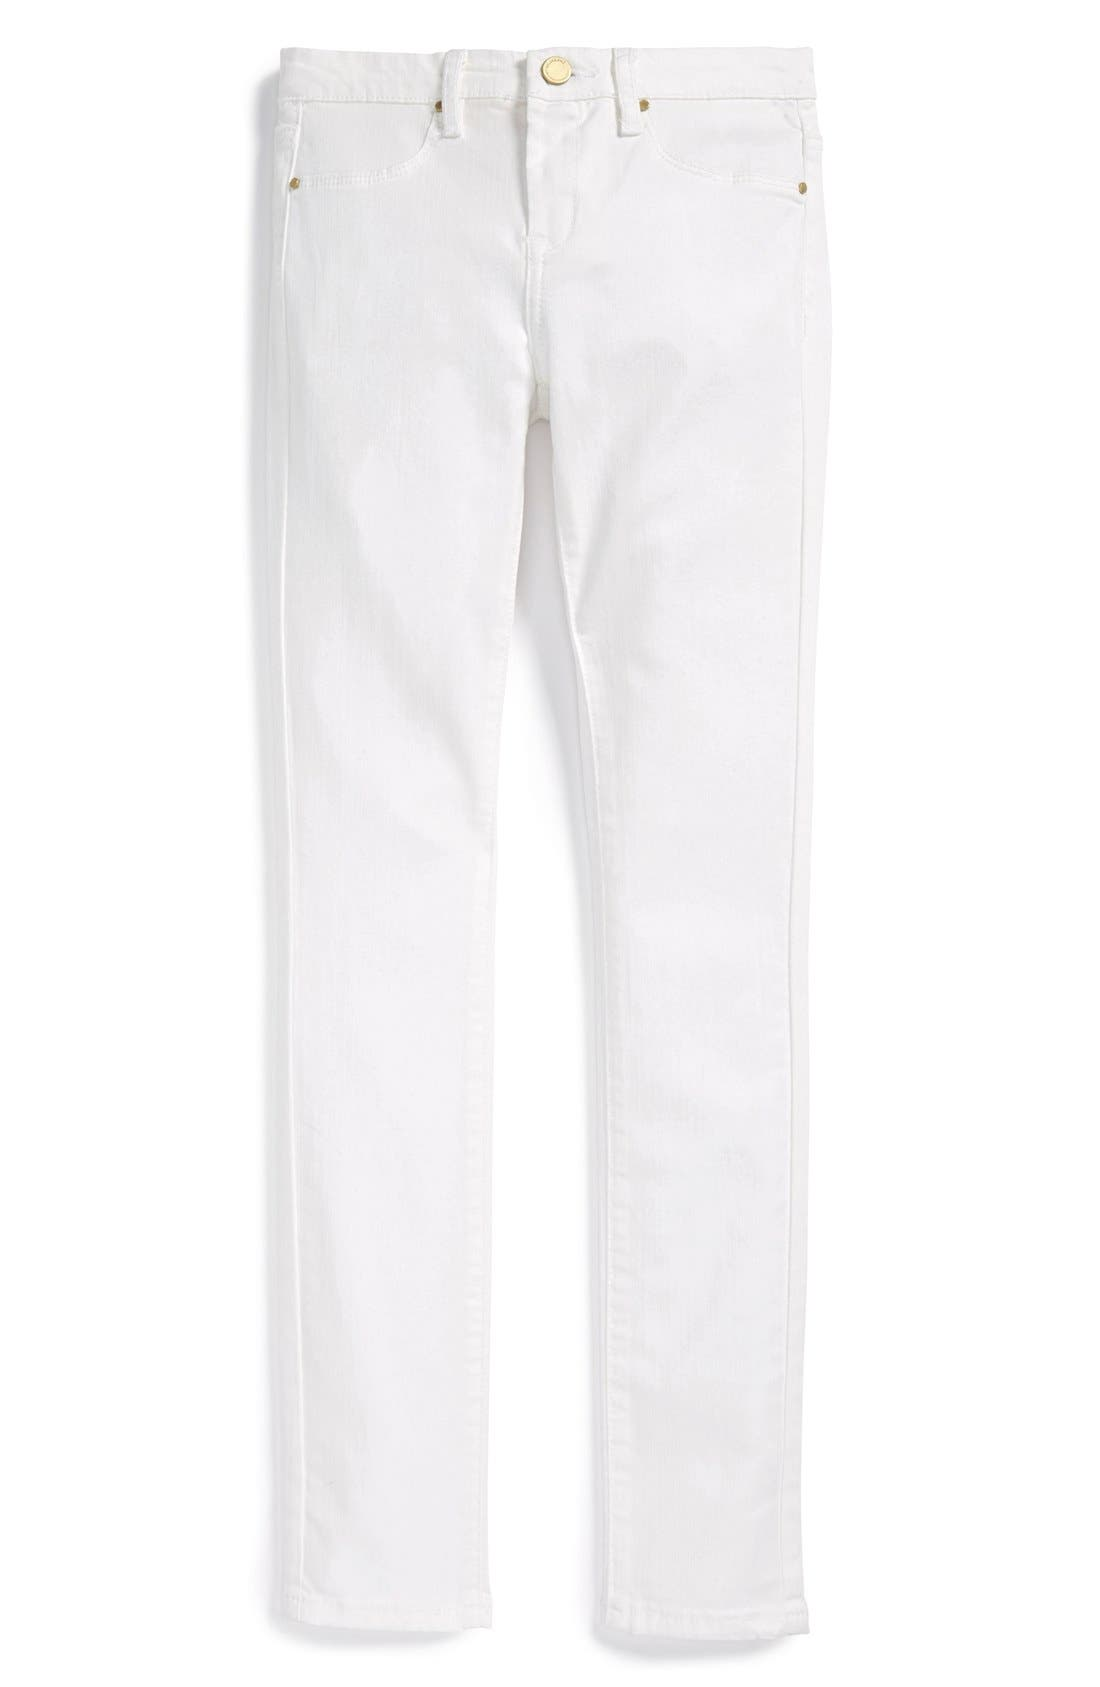 Stretch Denim Skinny Jeans,                             Main thumbnail 1, color,                             White